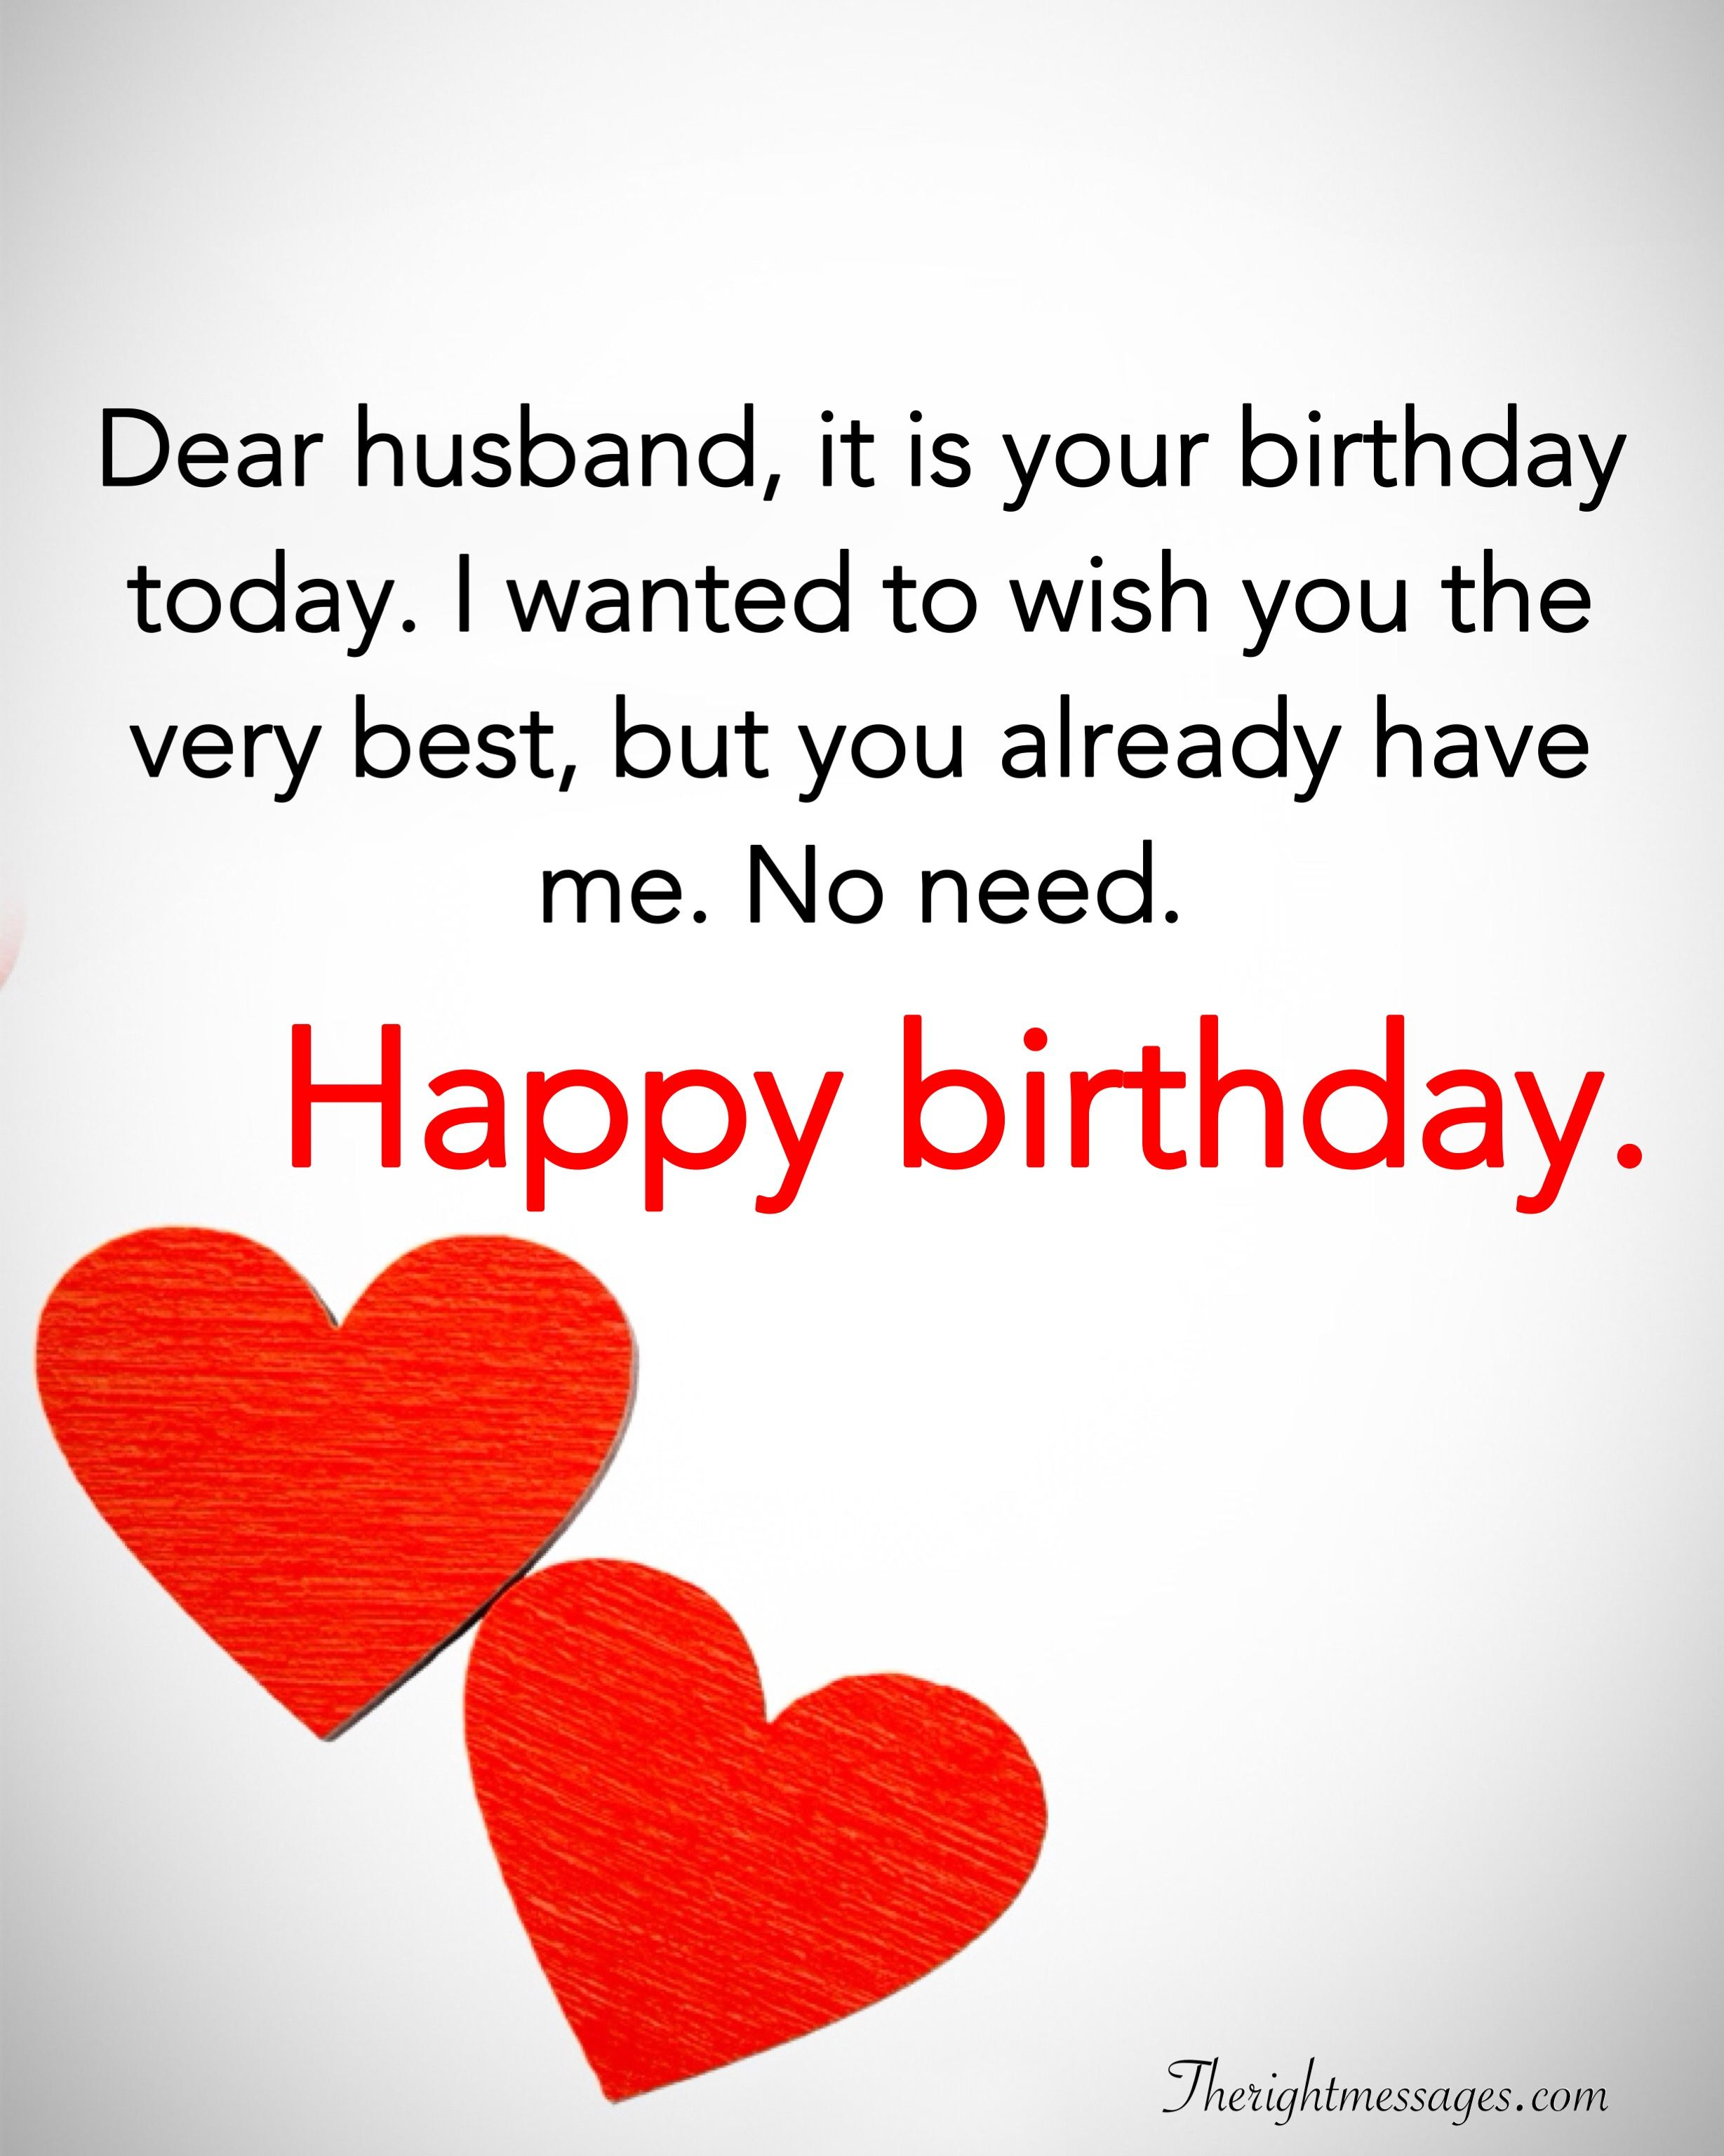 28 Birthday Wishes For Your Husband - Romantic, Funny & Poems ...